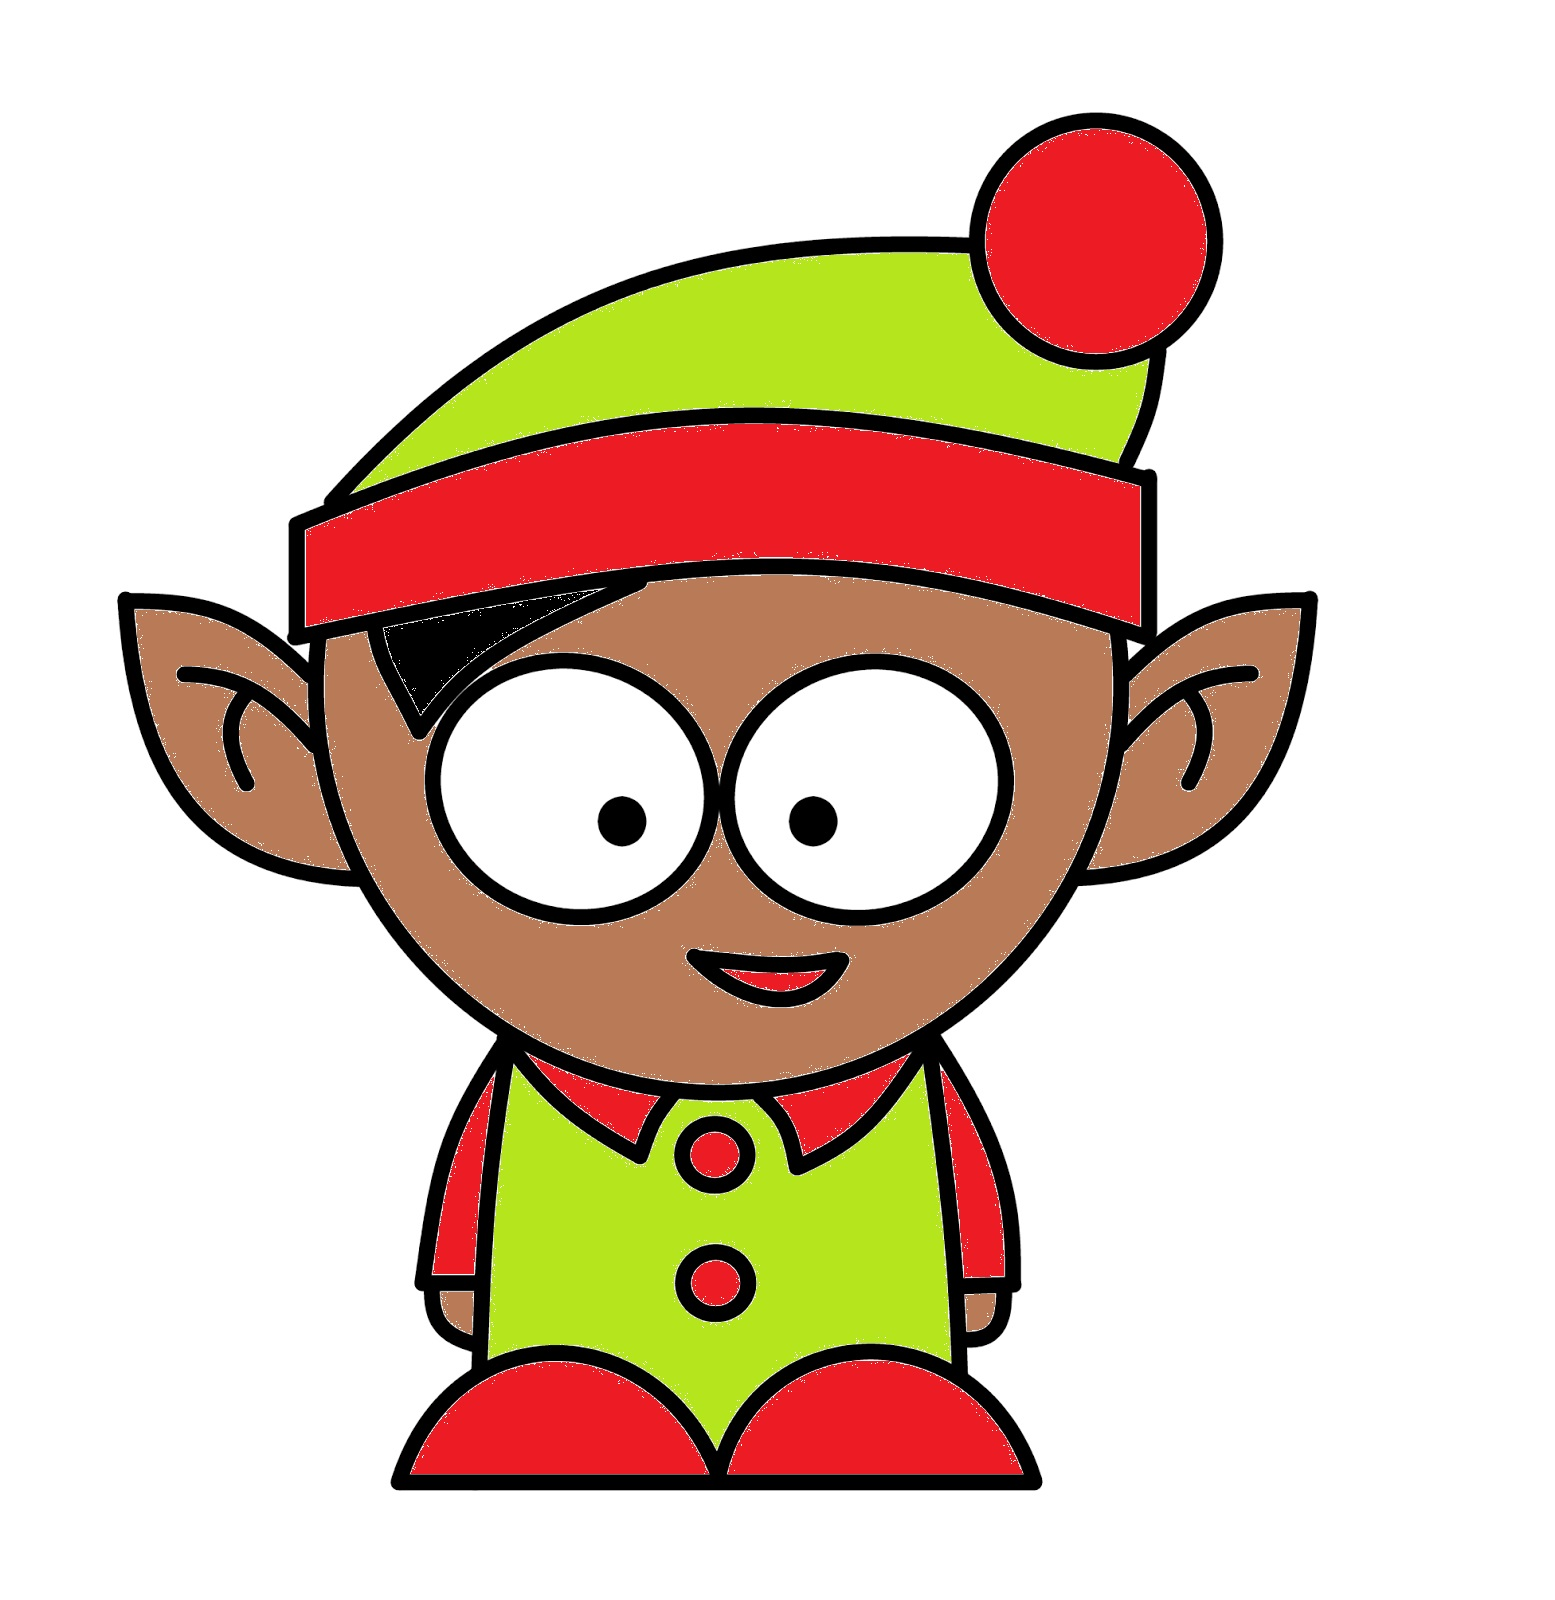 https://drawingbingo.com/drawing-of-an-elf/drawing-of-an-elf-how-to-draw-cartoons-christmas-elf/